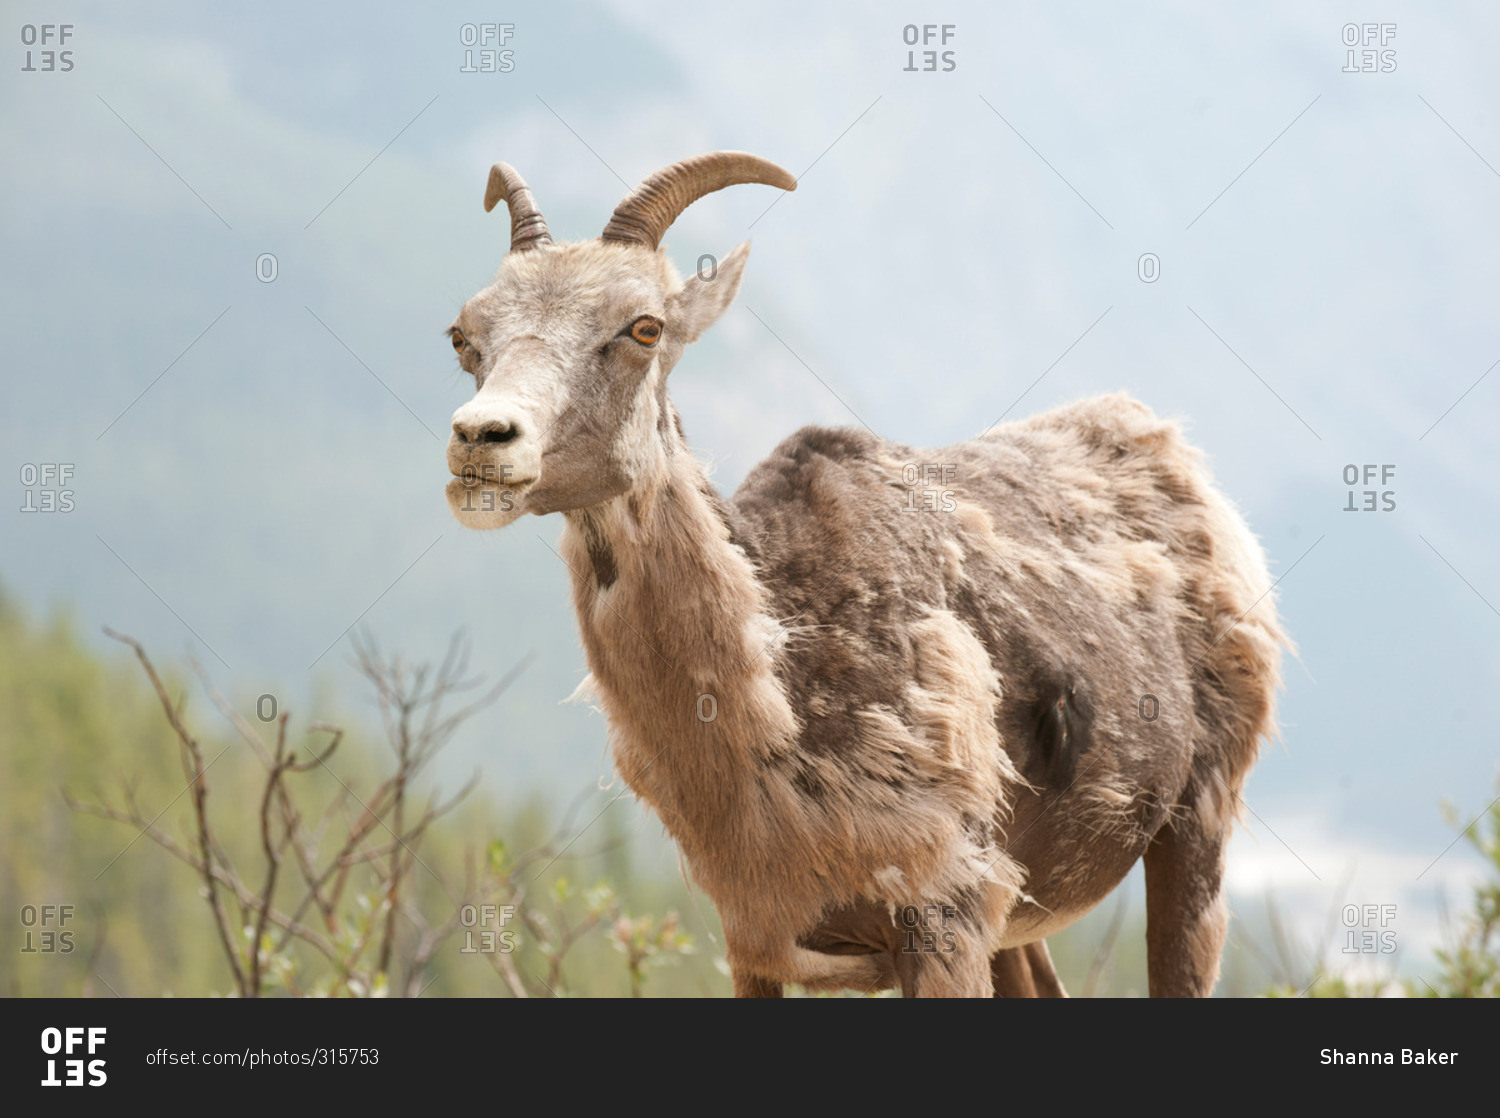 Wild Mountain Goat Shedding Its Fur